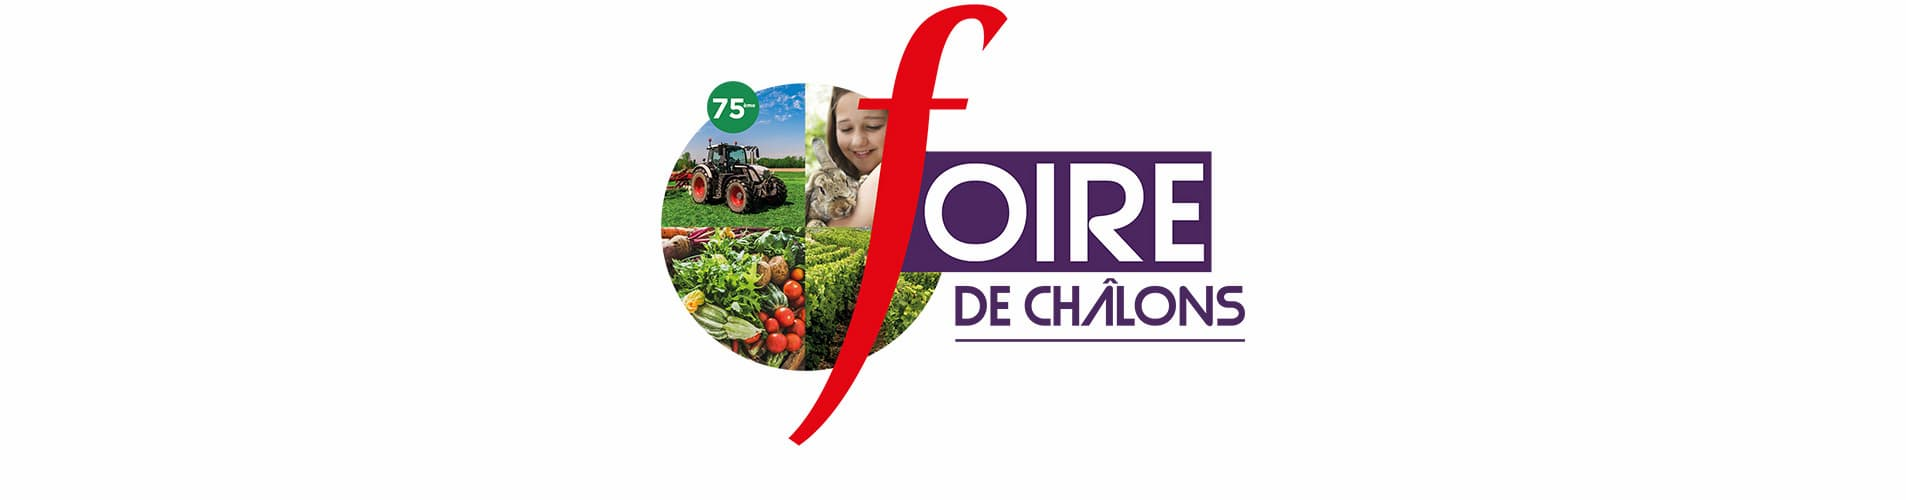 foire chalons creditagricole